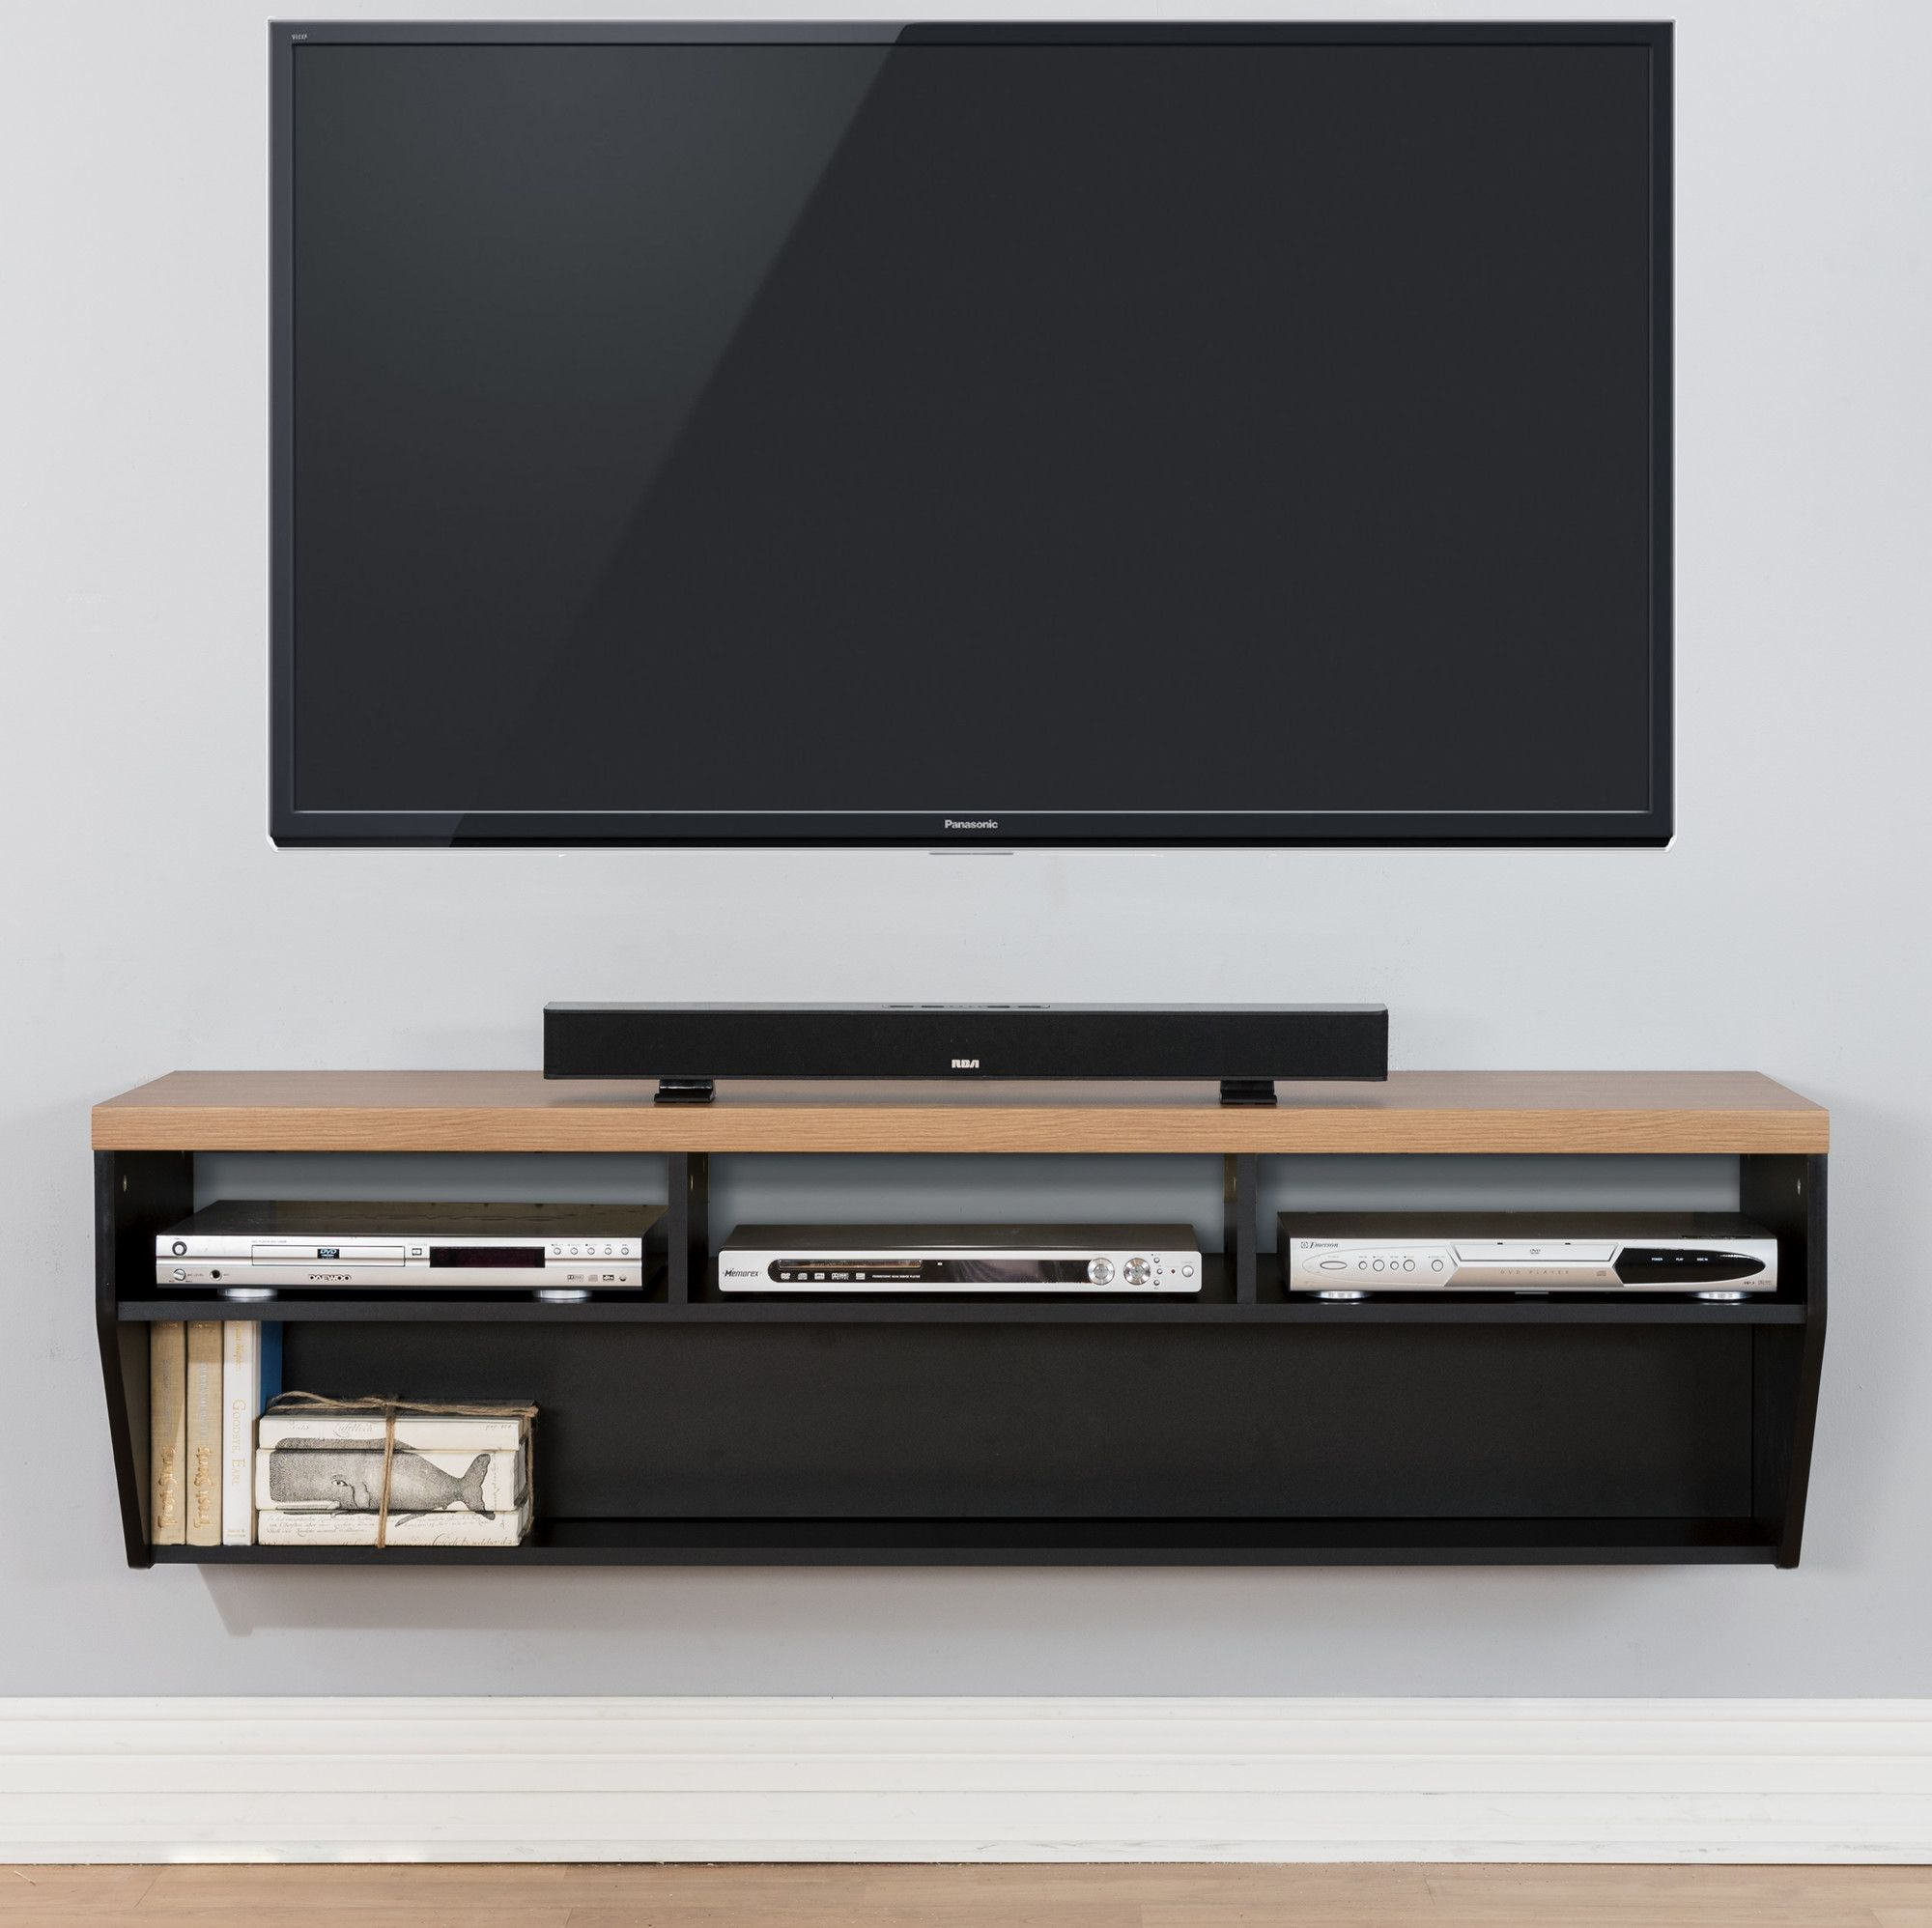 Panasonic Tv Meubel.60 Angled Sides Wall Mounted Tv Component Shelf Modern Floating